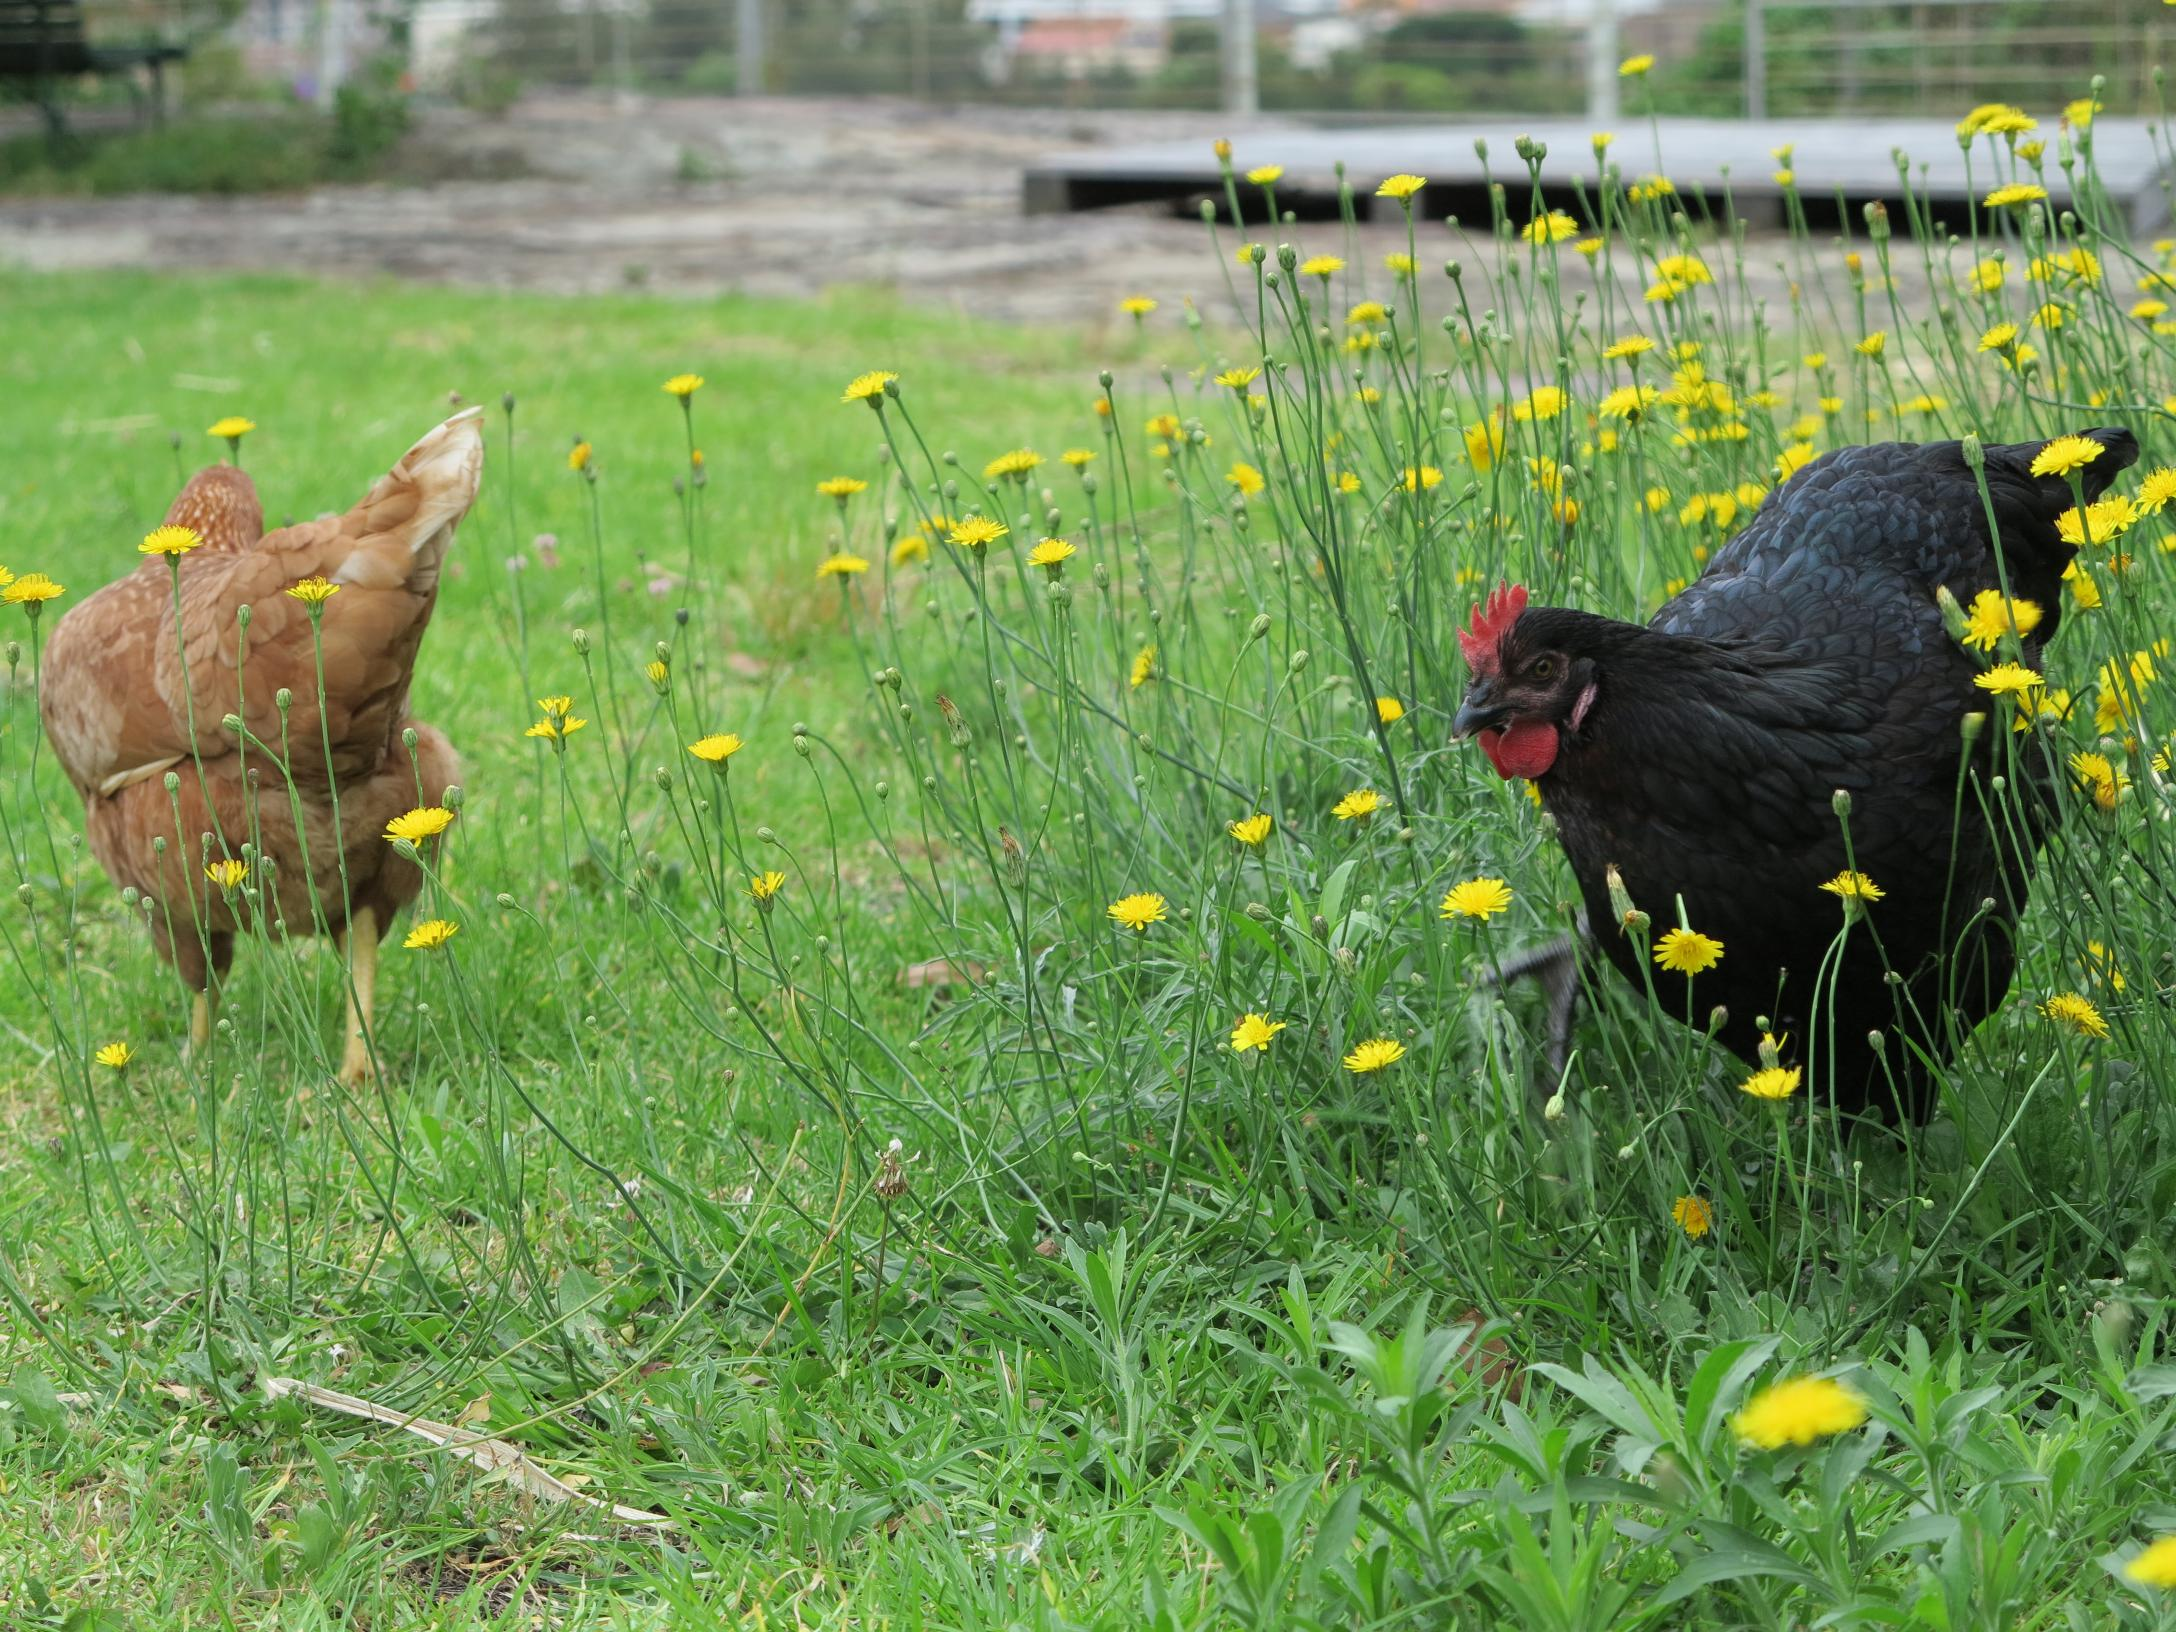 Baba Ganouj (RIP) and Daria free ranging amongst the dandelions in mid-2014